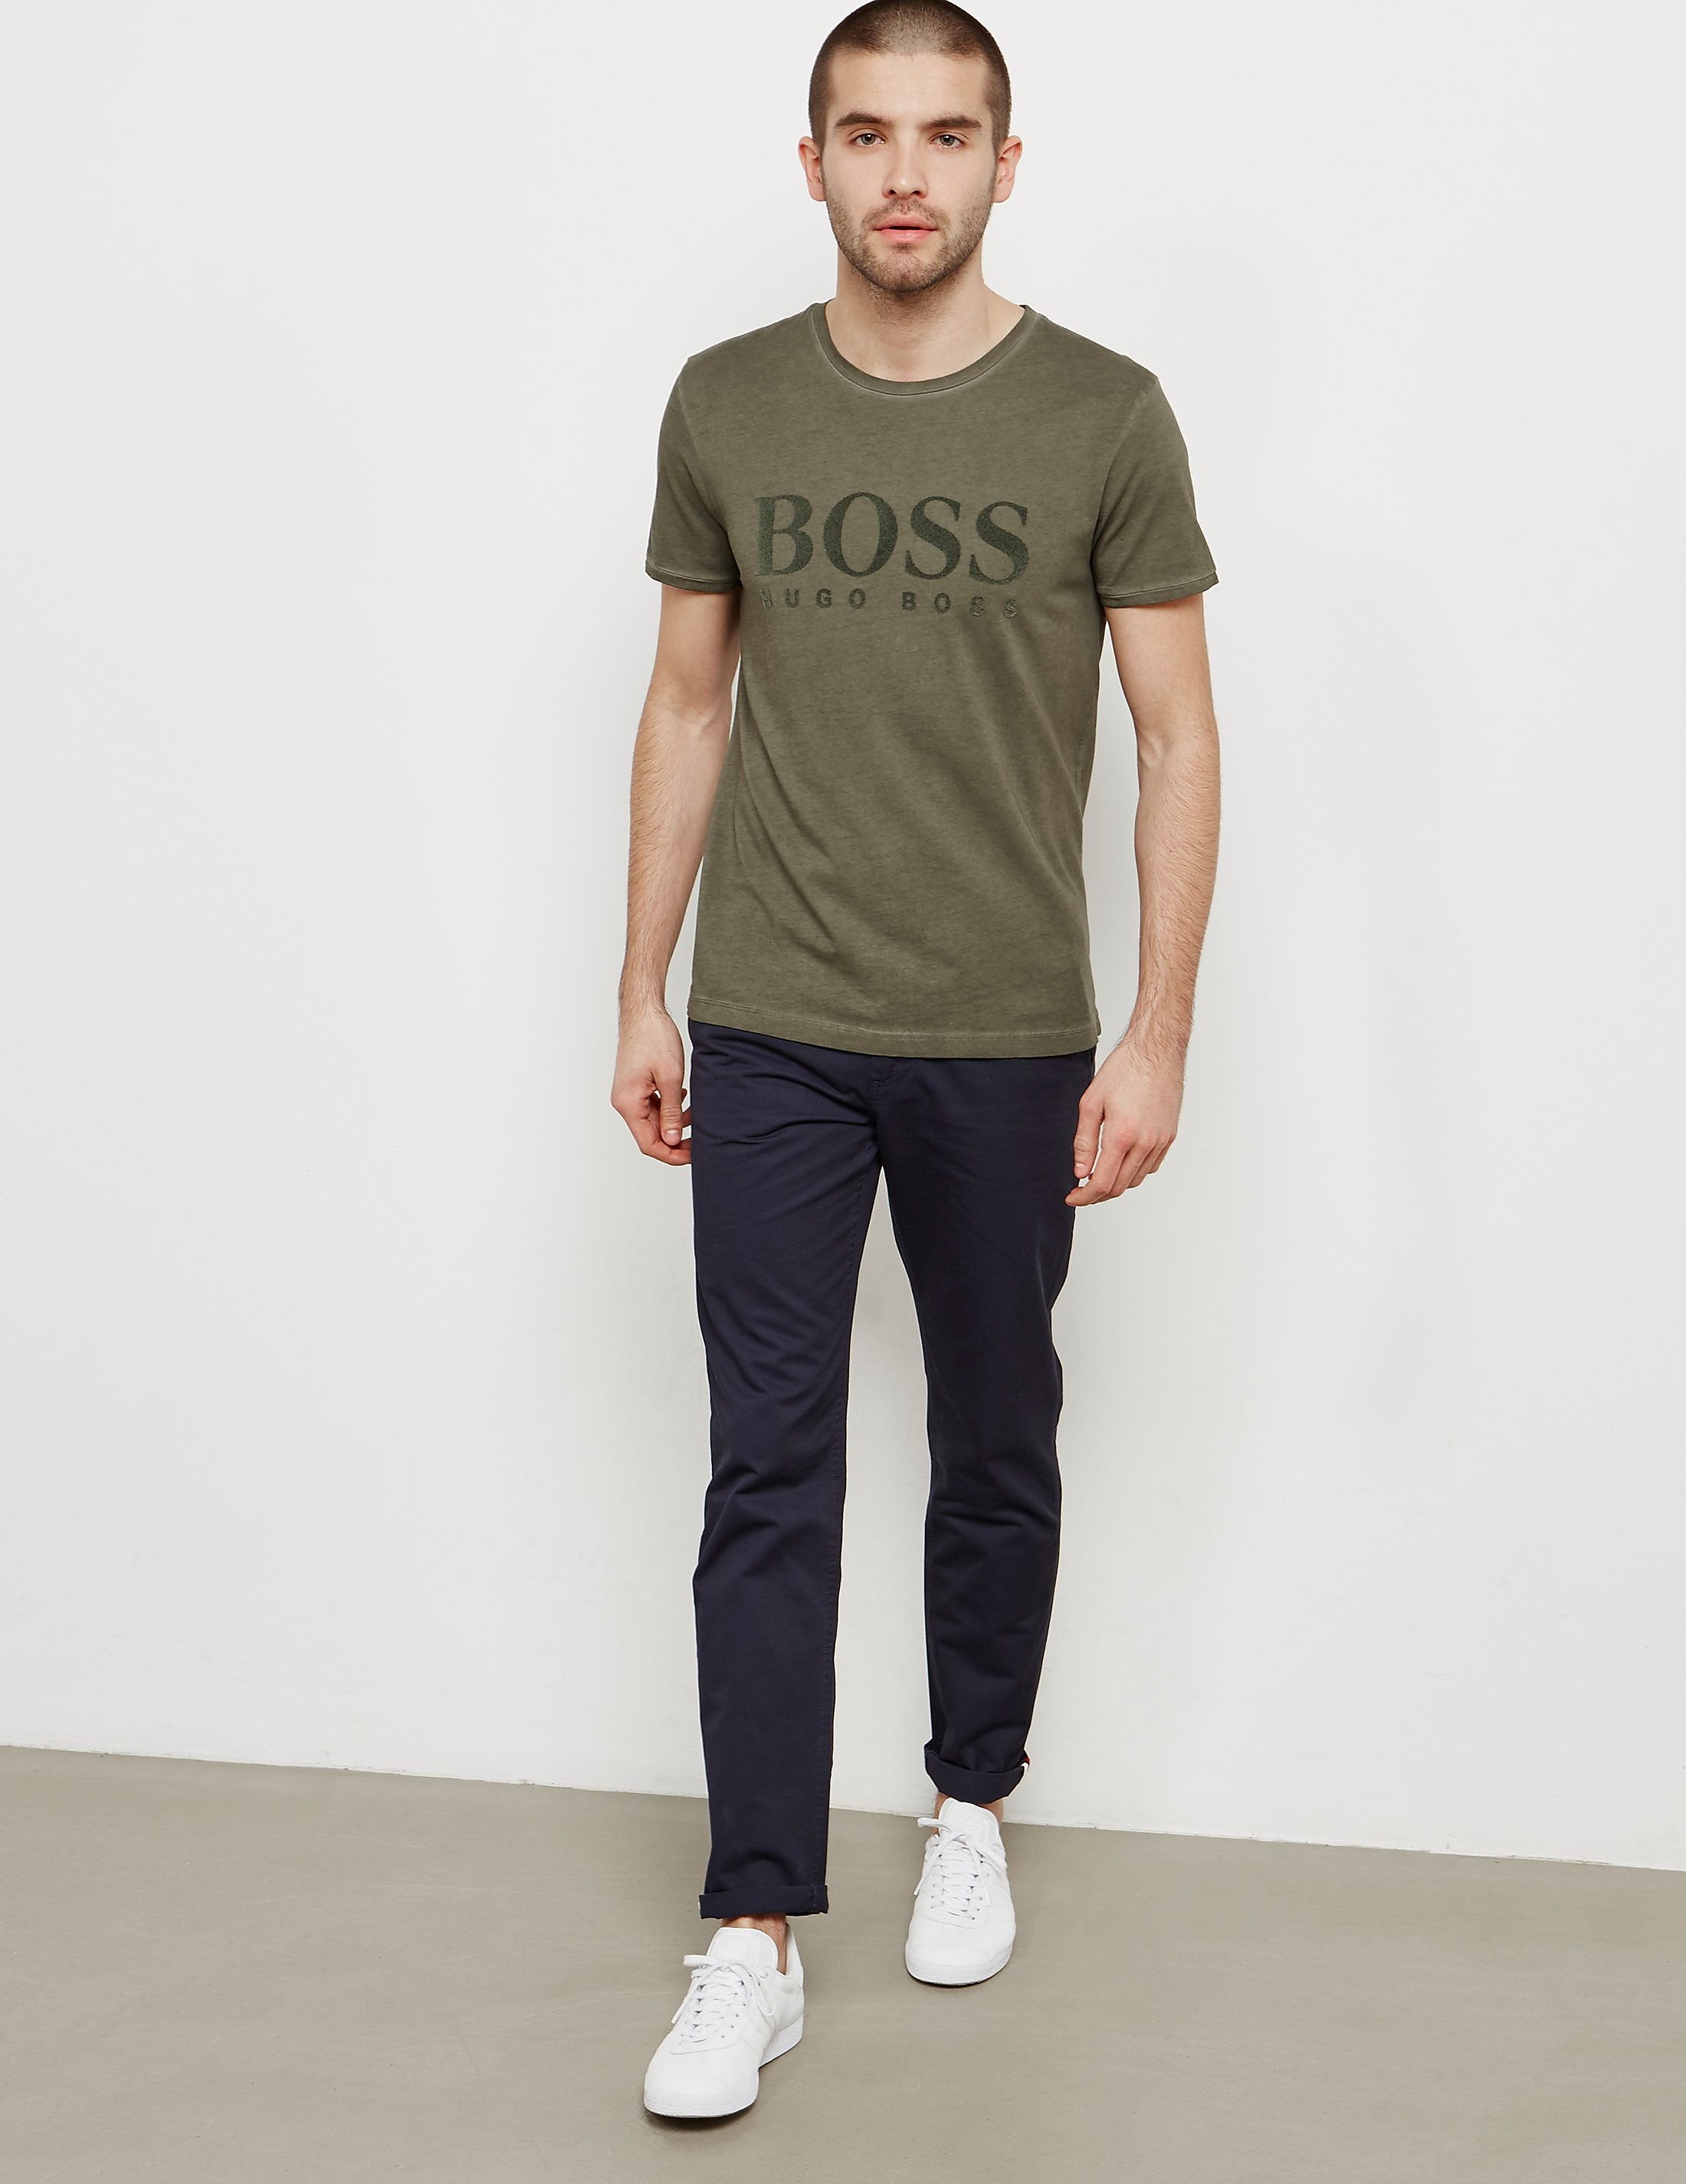 BOSS Tomlouis Flock Short Sleeve T-Shirt